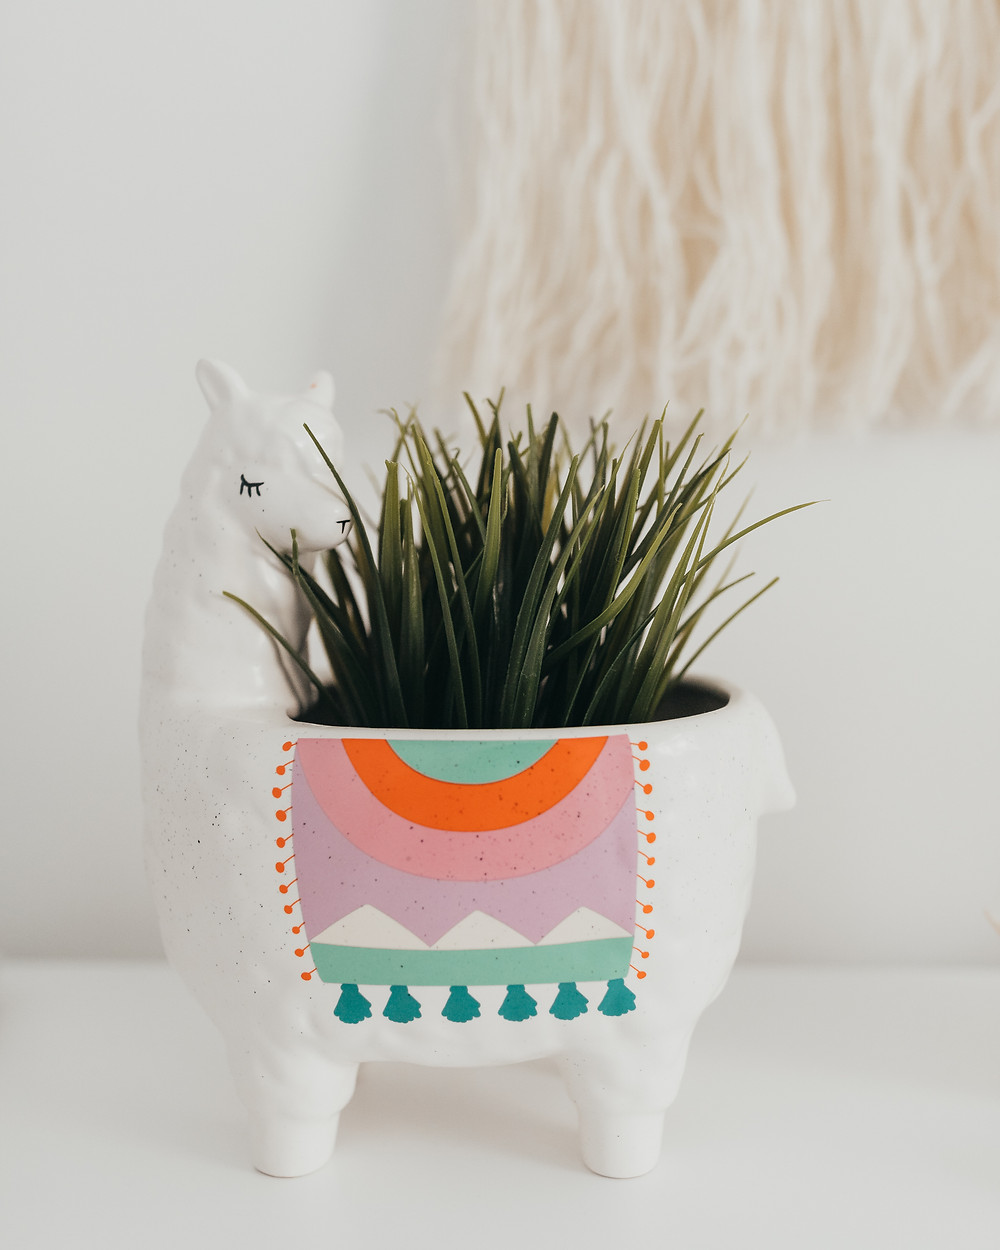 A llama plant pot with green grasses in it.